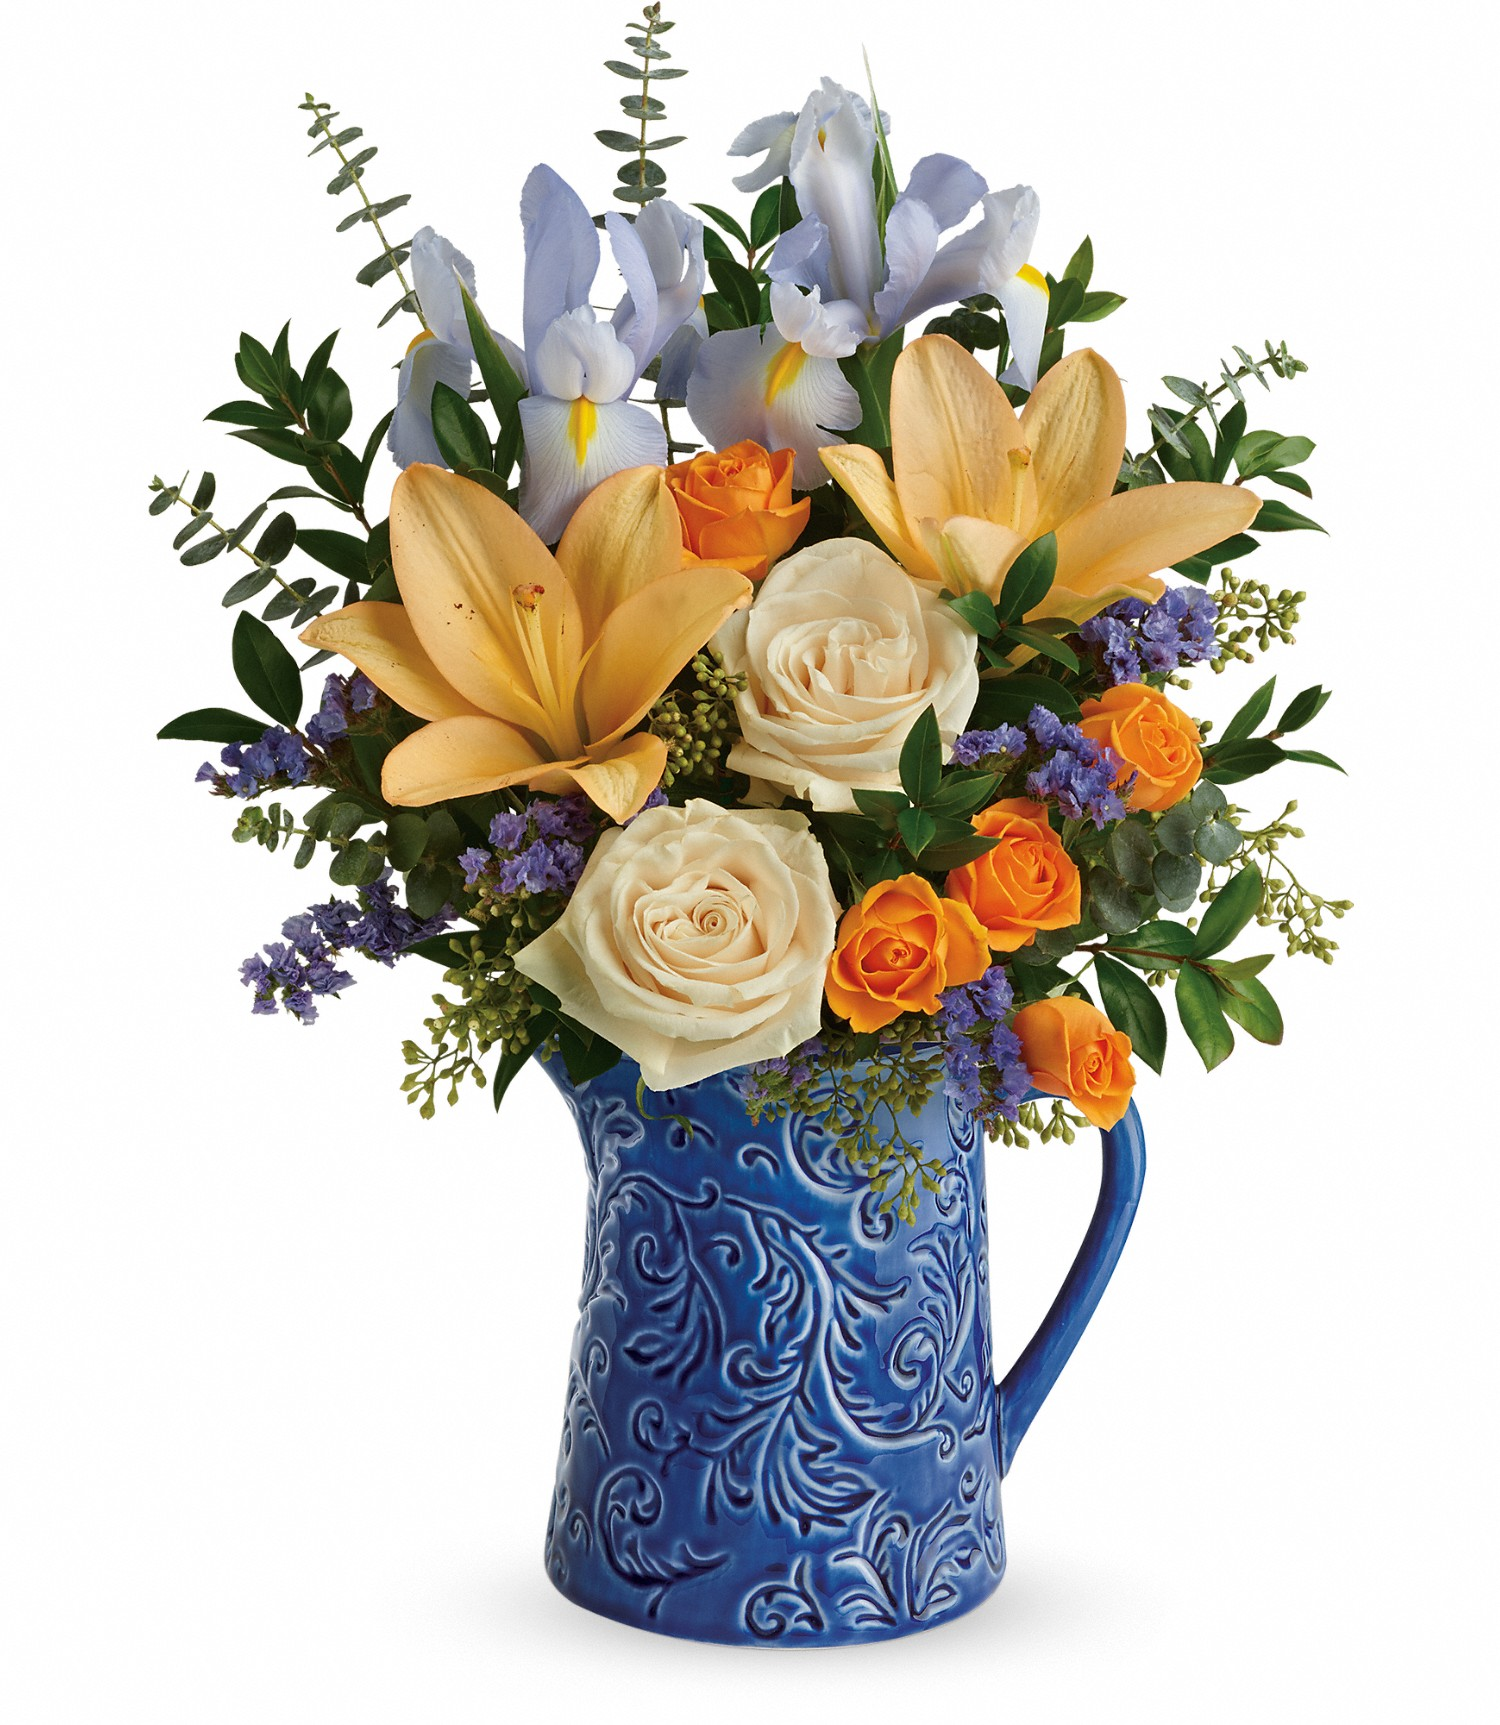 Birthday spring beauty bouquet rochester ny florist rockcastle spring beauty bouquet izmirmasajfo